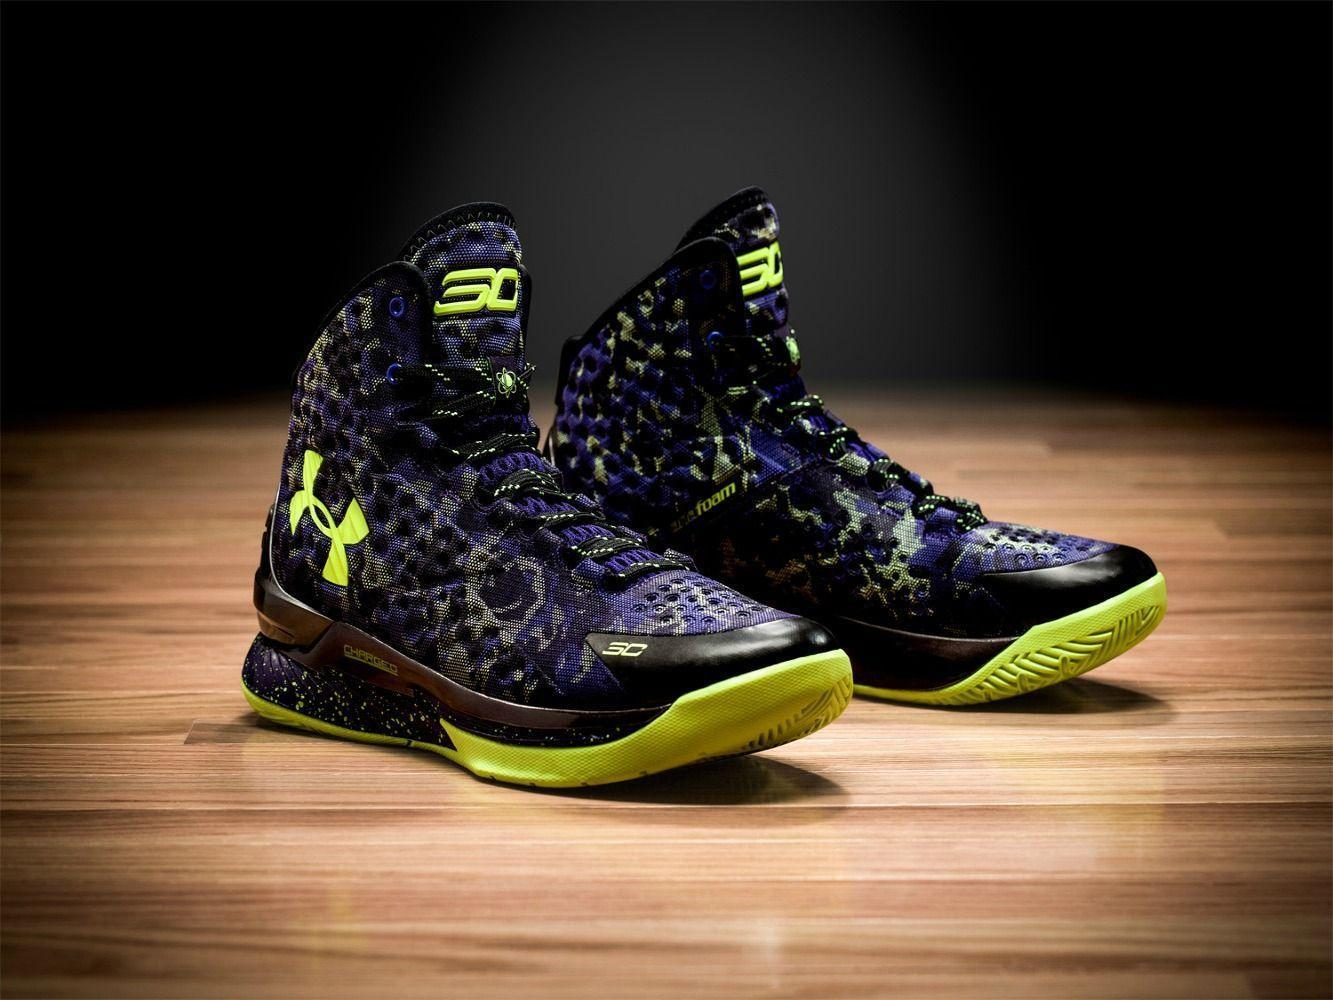 under armour steph curry wallpaper - photo #32